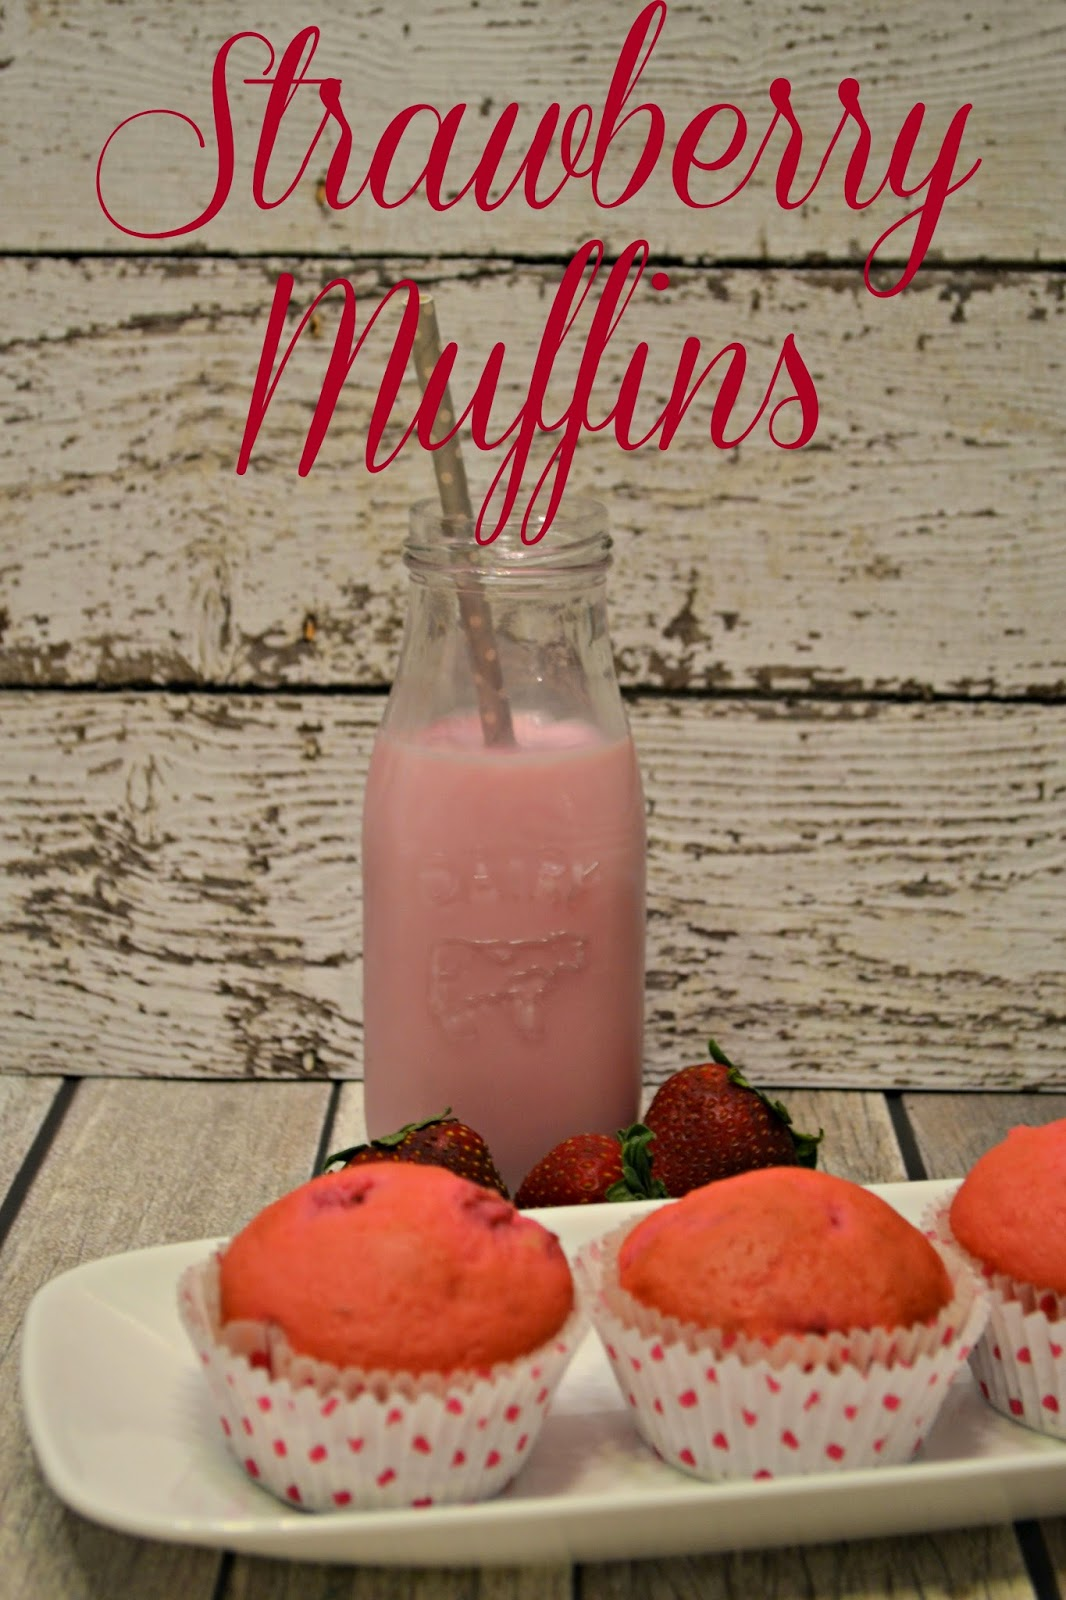 Strawberry Muffins with TruMoo Strawberry Milk #Recipe Strawberry muffin recipe.  easy muffin recipe.  Strawberry milk muffins